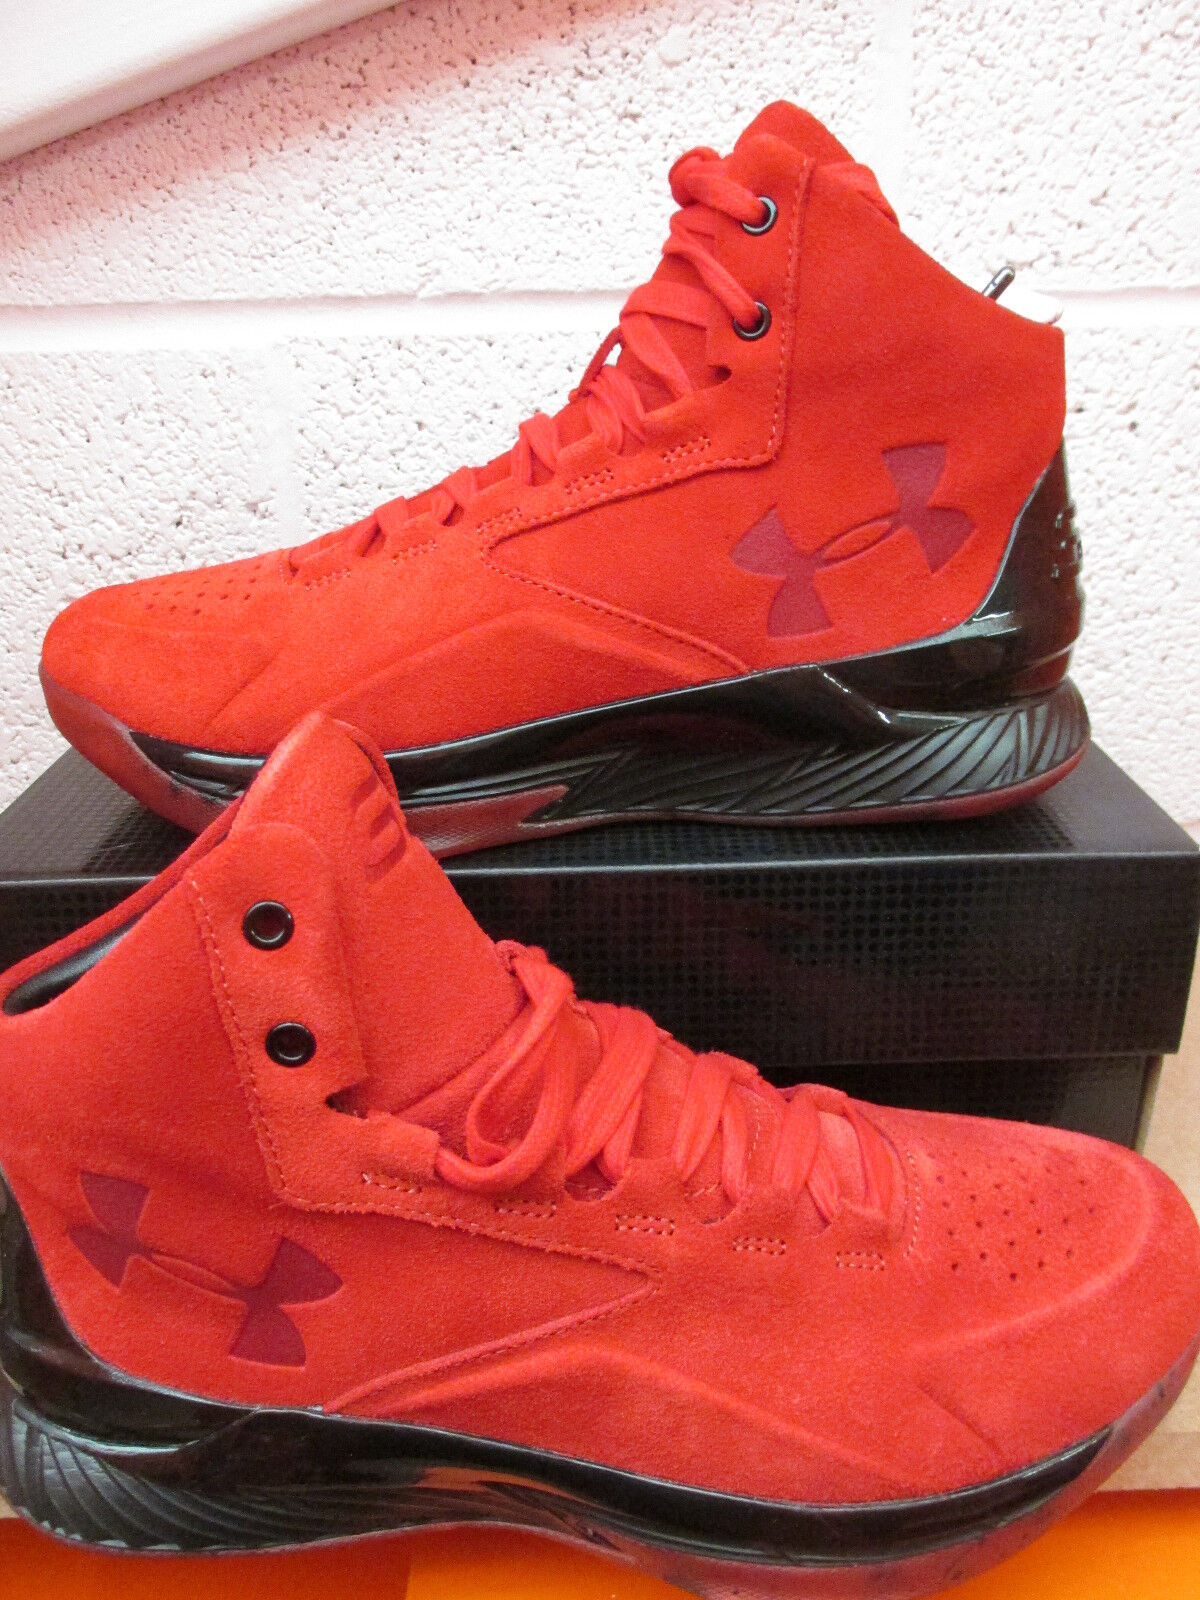 Under Armour UA Curry 1 Lux Mid SDE Hi Top Basketball Trainers 1296617 600